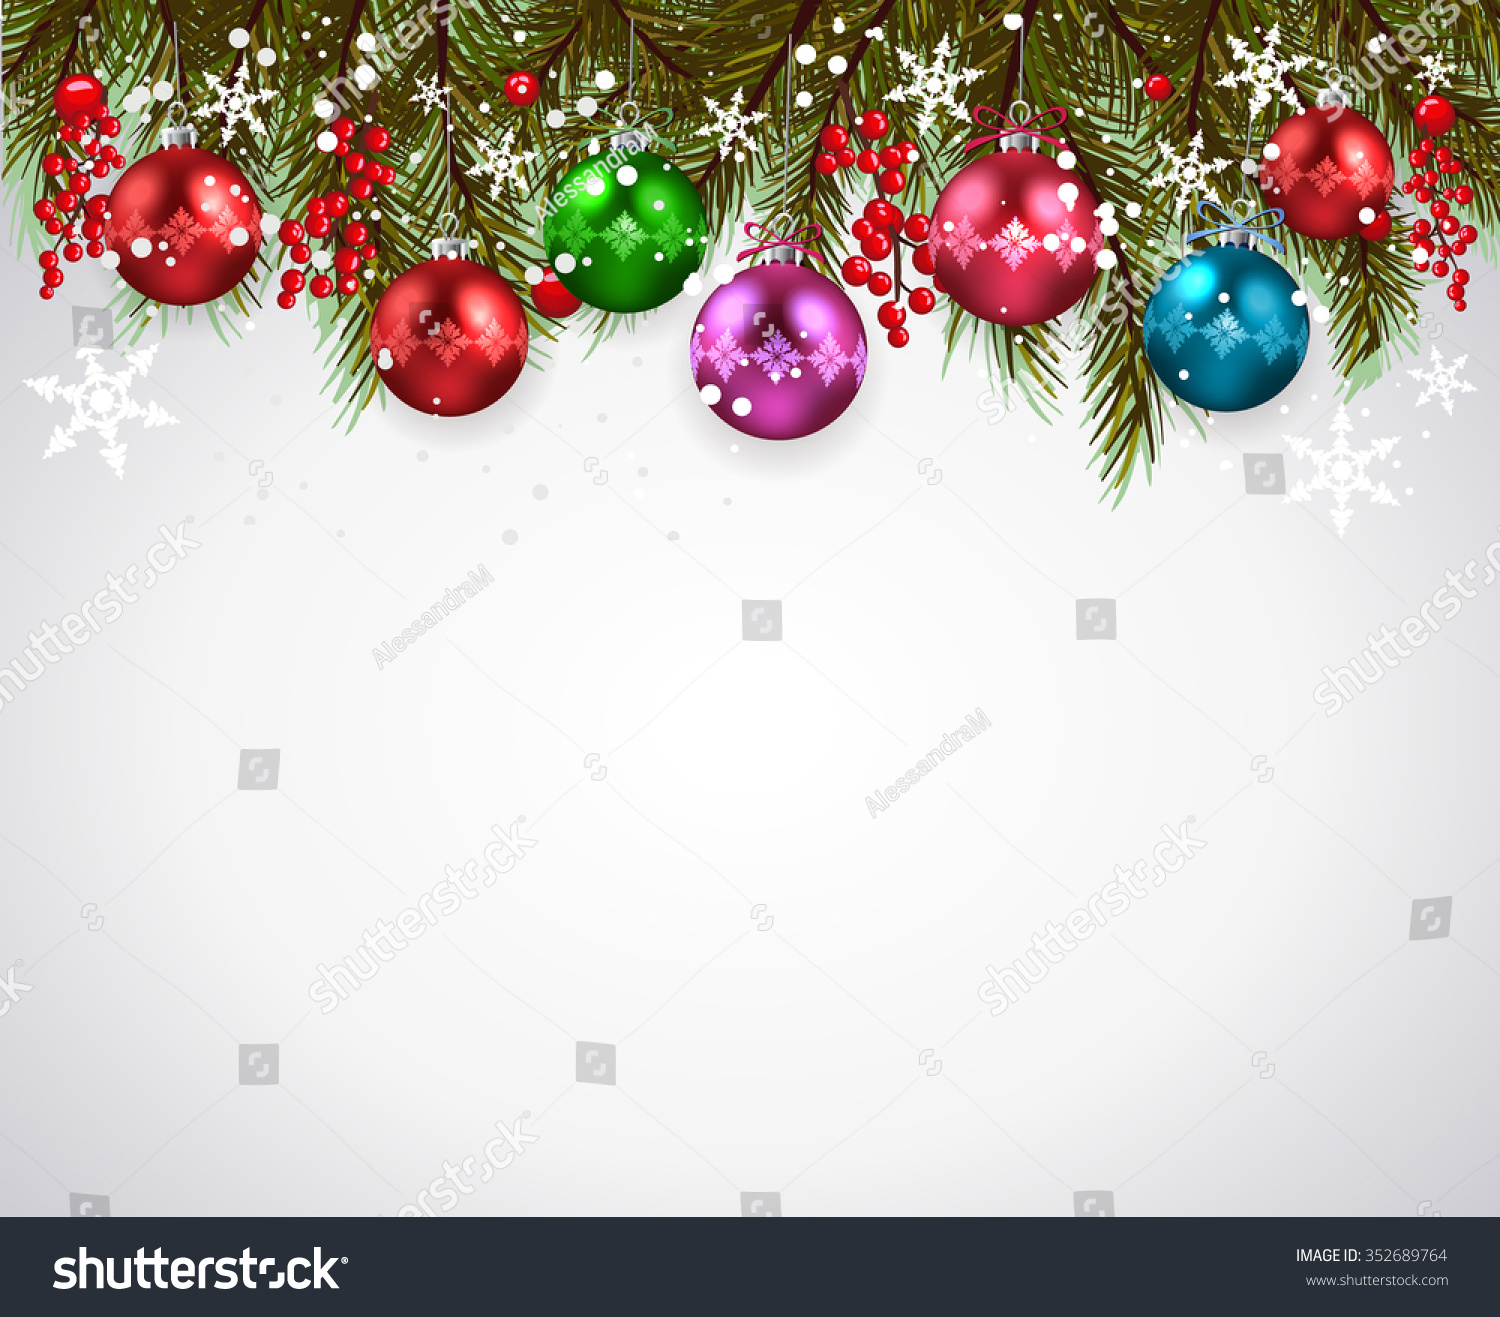 Christmas background-Realistic frame with fir and Christmas balls